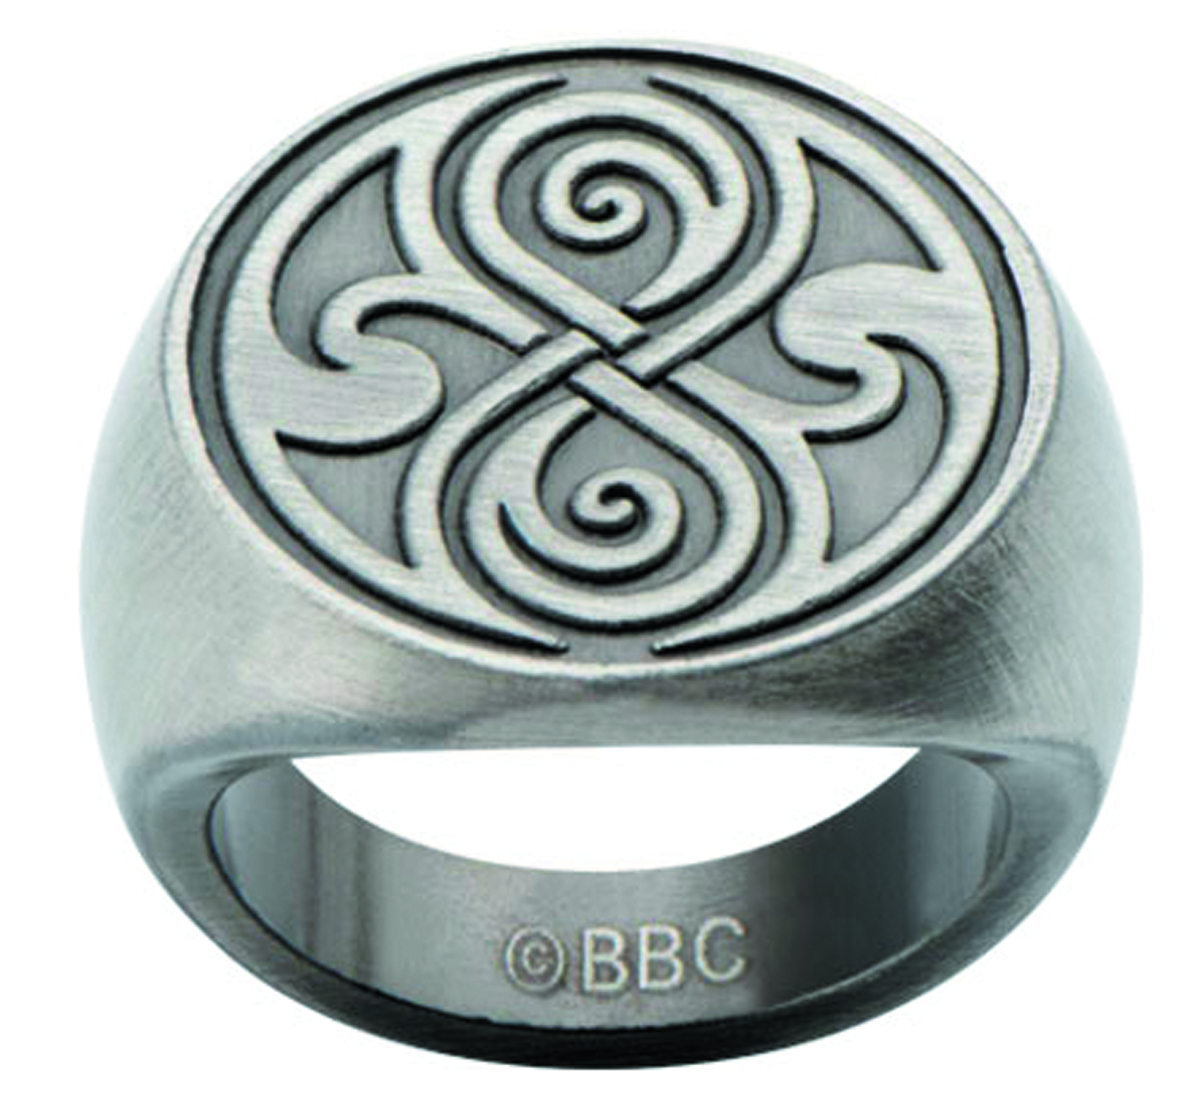 DOCTOR WHO Dr. Who Seal of Rassilon Ring FxVWNZytL